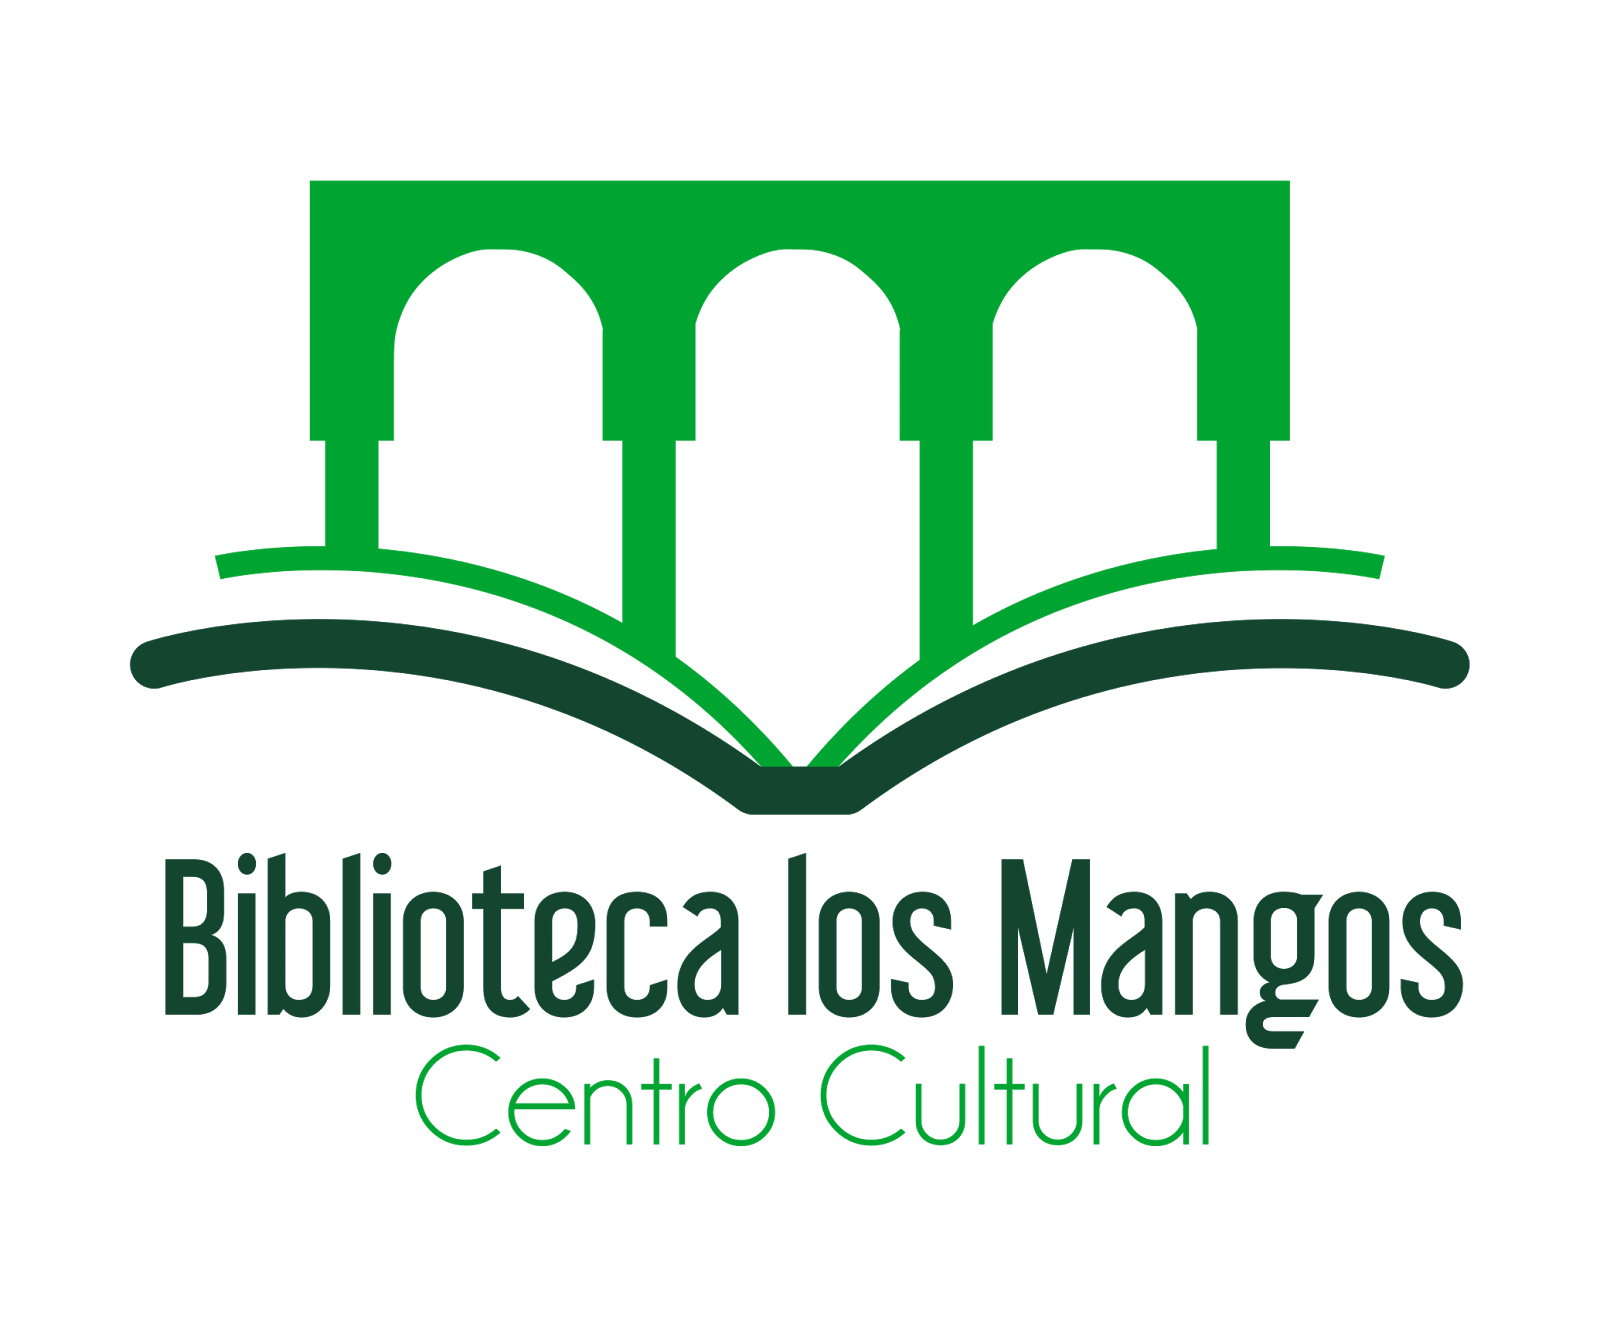 Ooh Marketing Digital Biblioteca Los Mangos Puerto